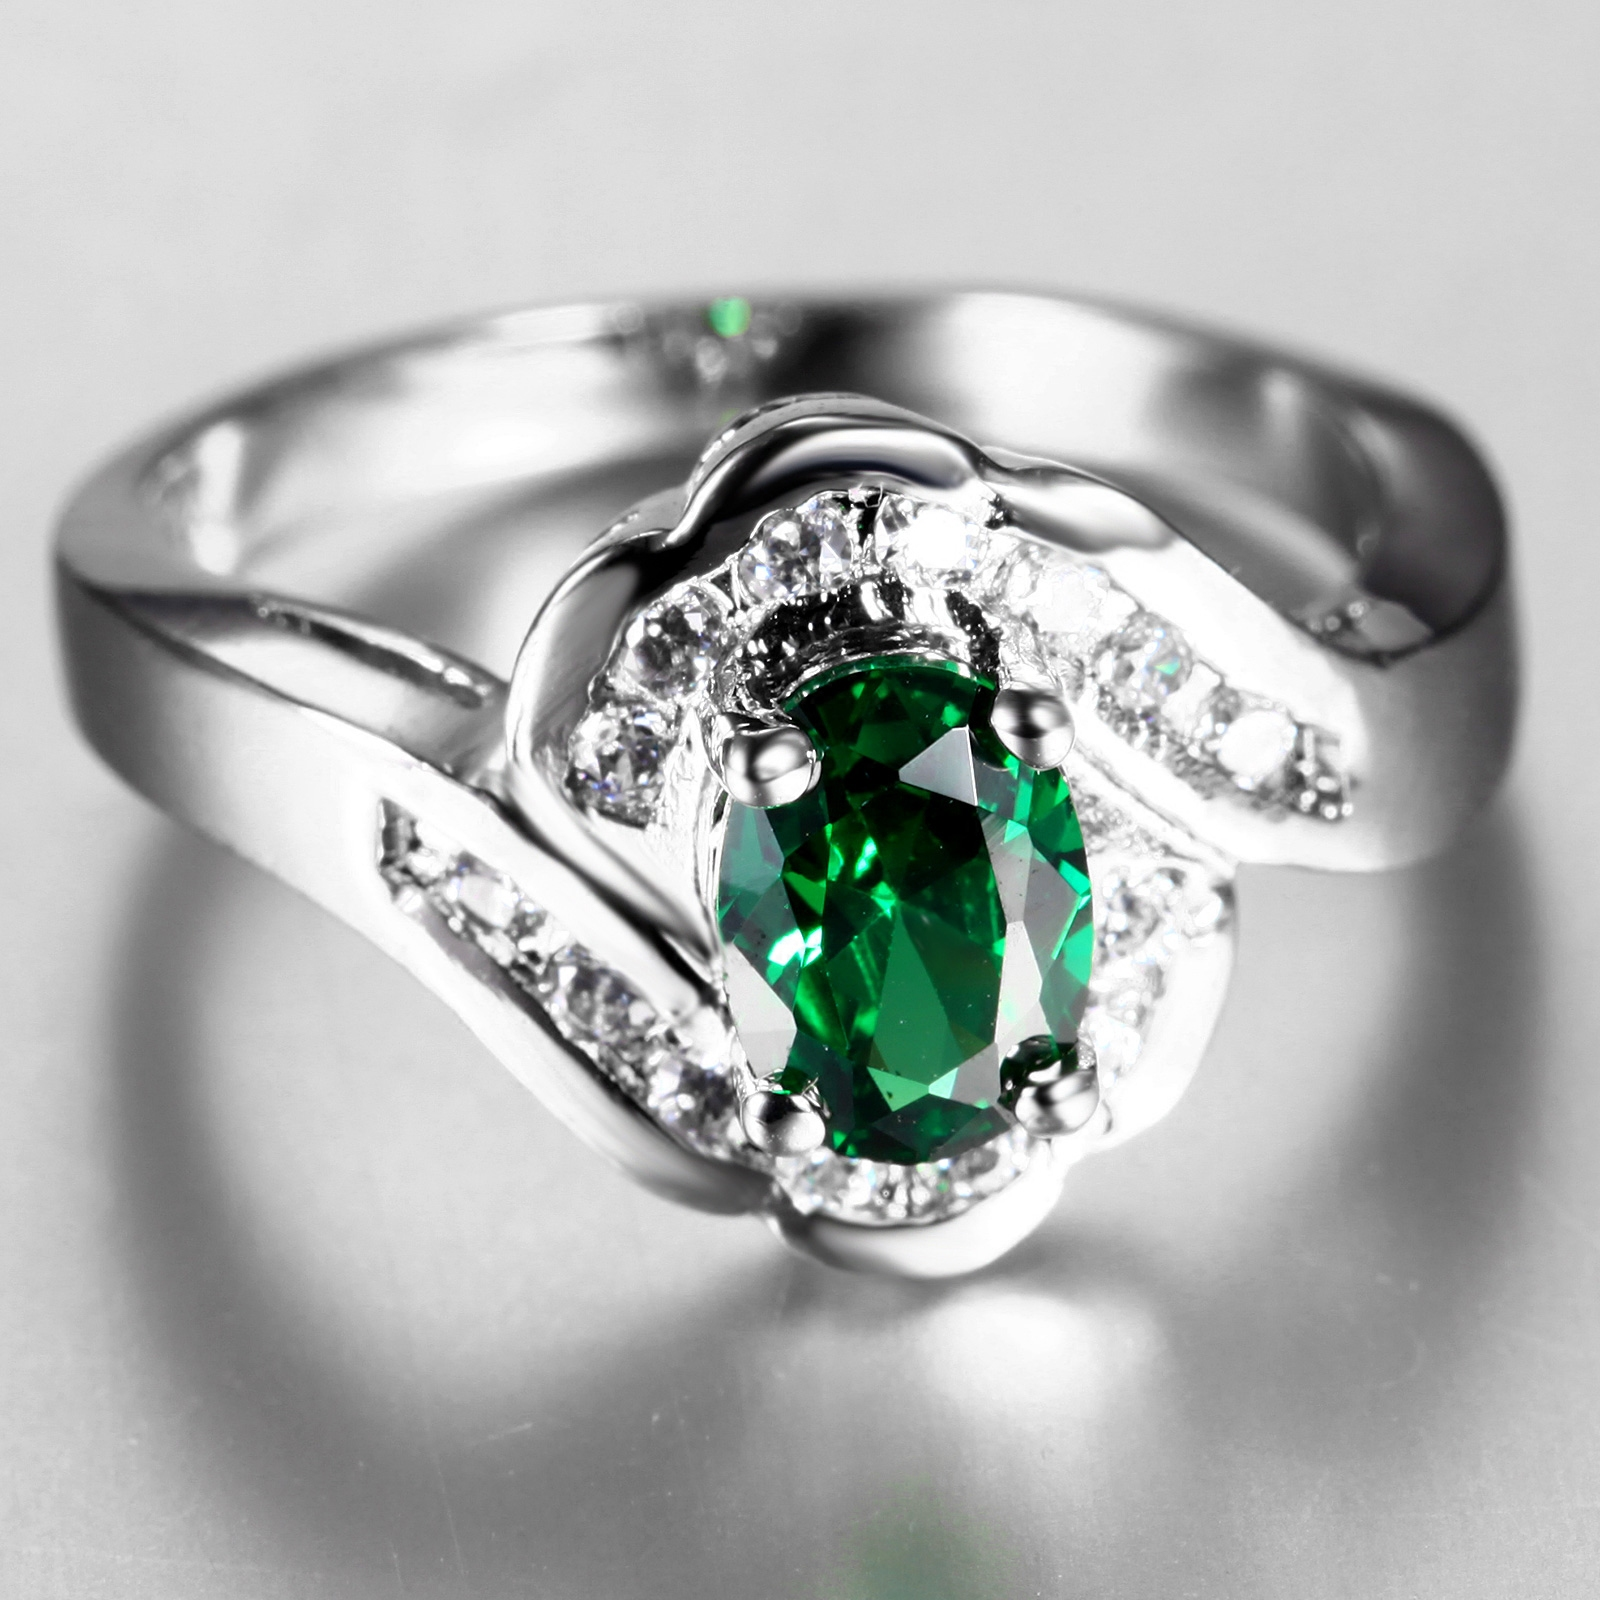 Flammable volcano green crystal ring finger ring korean female models fashion 100åªsynthetic crystal jewelry lovers ornaments